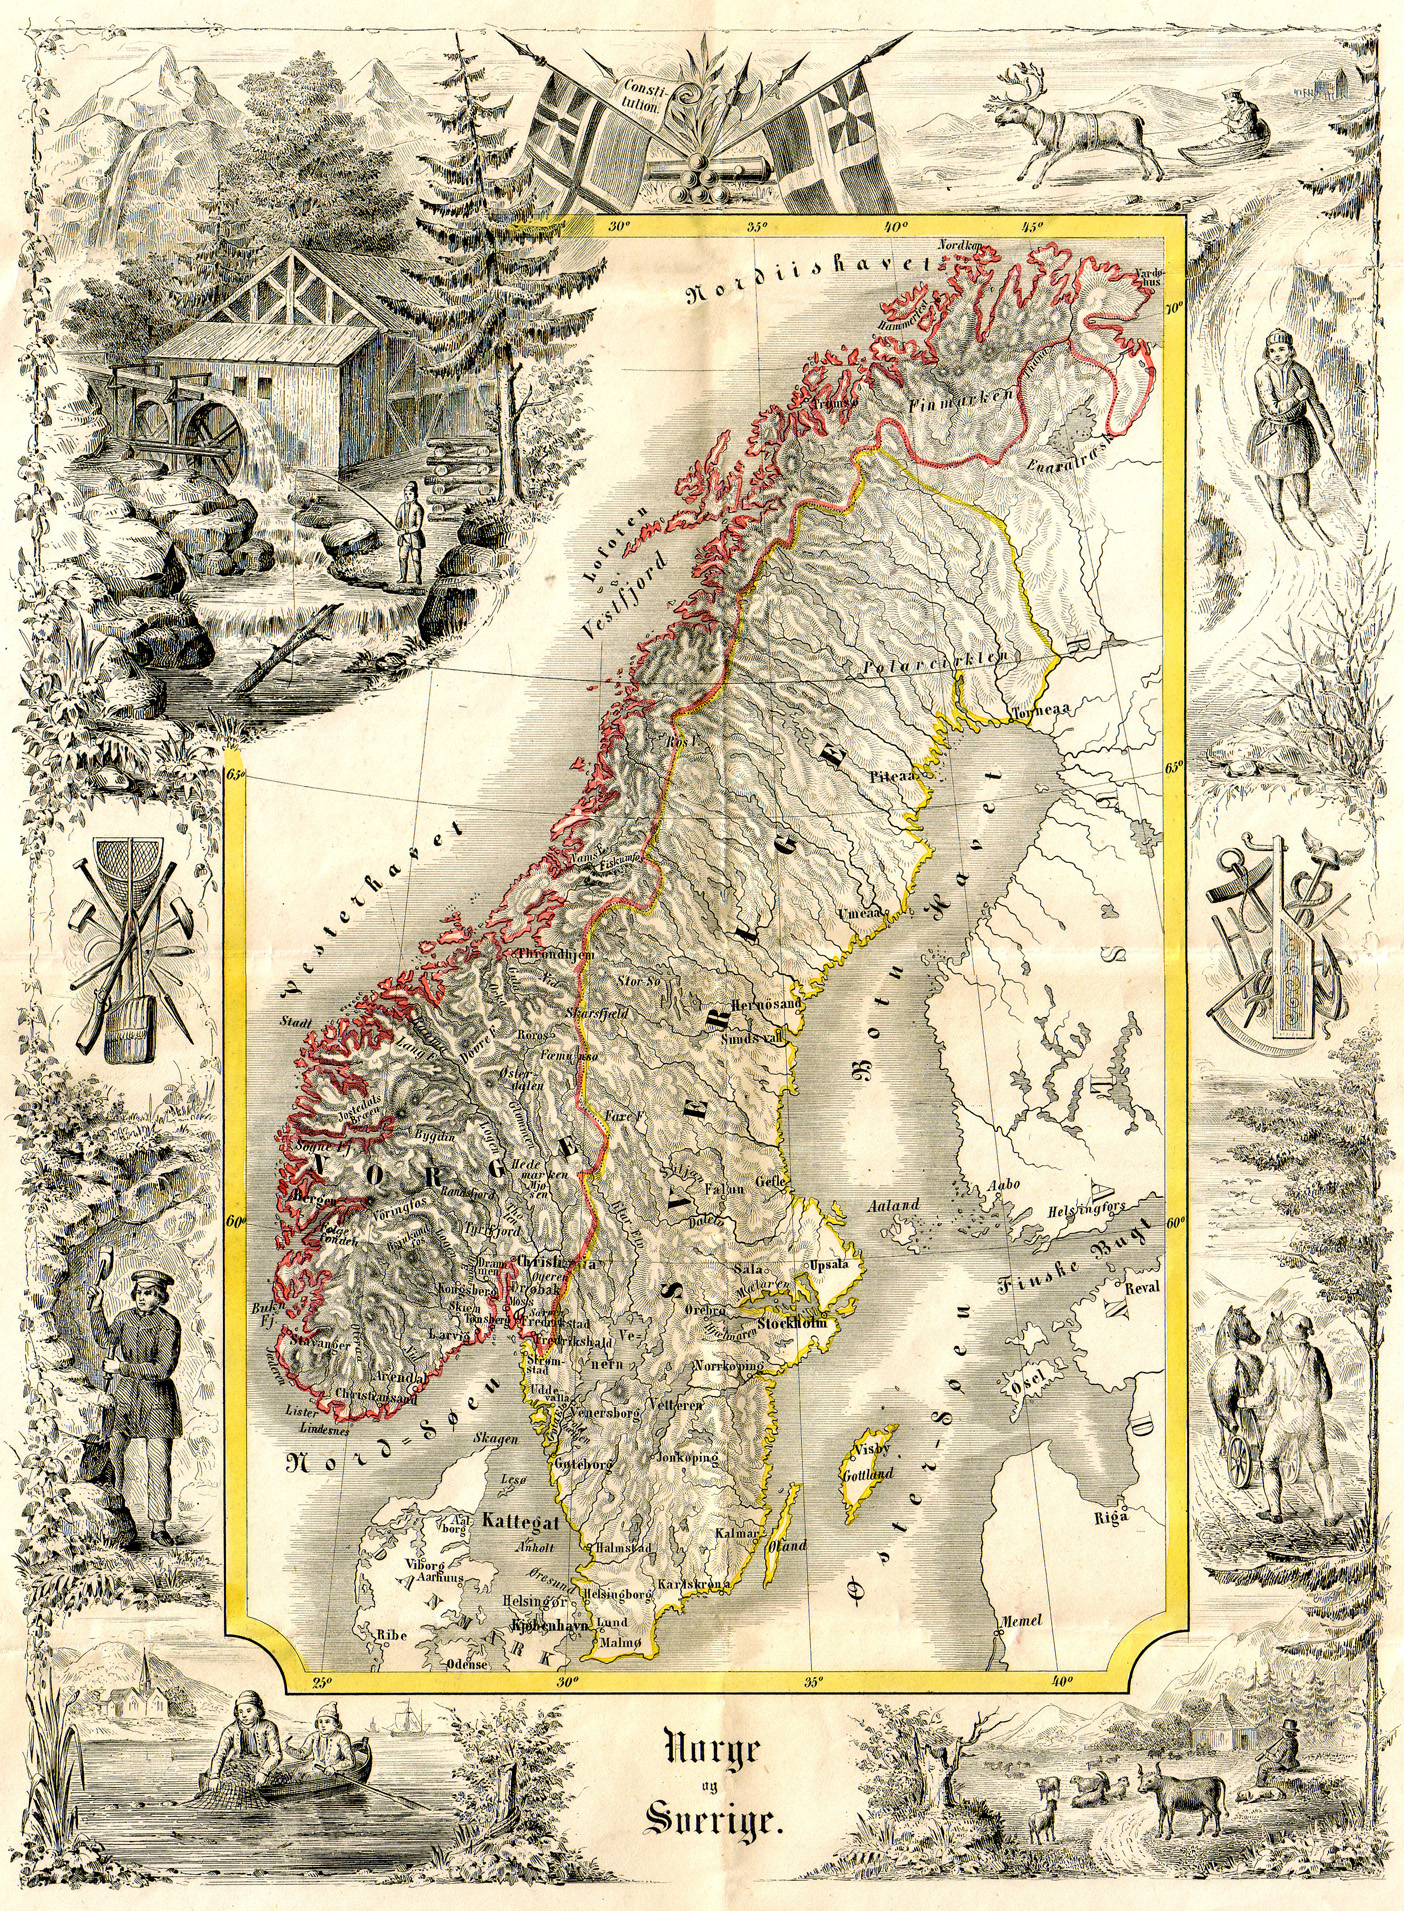 https://i0.wp.com/upload.wikimedia.org/wikipedia/commons/b/bd/Norge_og_Sverige_1847_copy.jpg